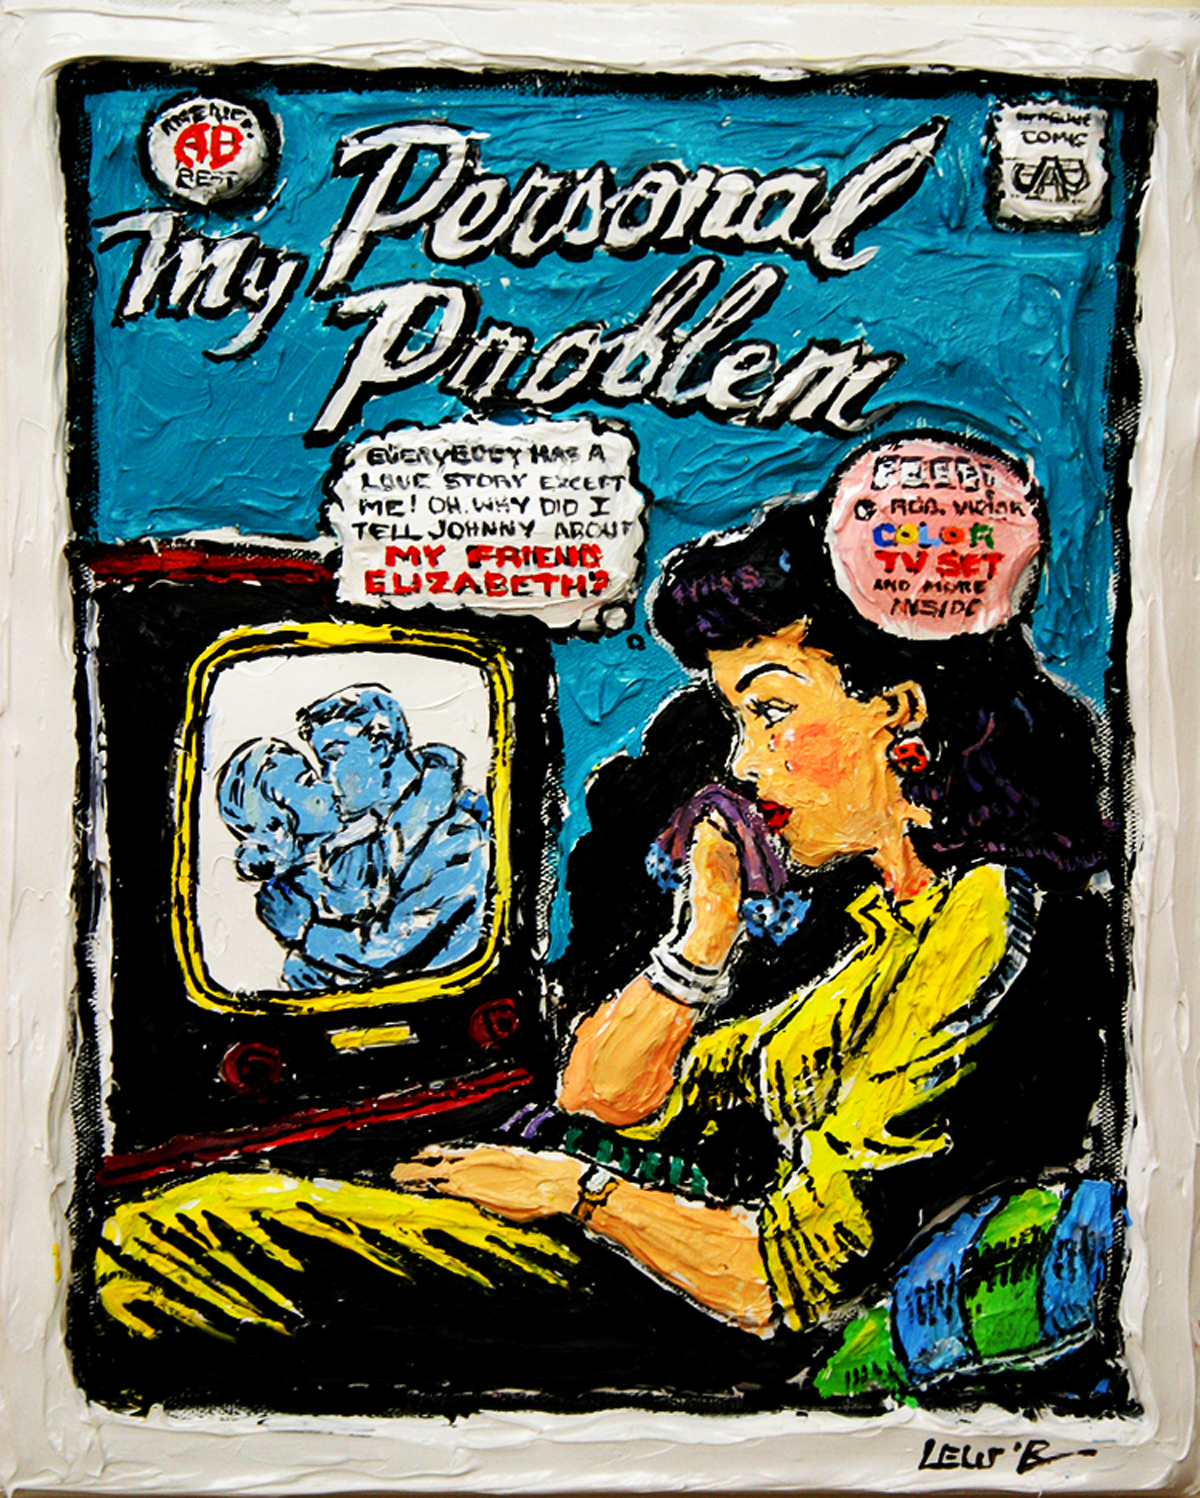 Leslie Lew, Personal Problems--Dear Abby, Sculpted Oil on Canvas, 20 x 16 inches, 2012, Courtesy of ArtSpace/Virginia Miller Galleries, Coral Gables (Miami), Florida